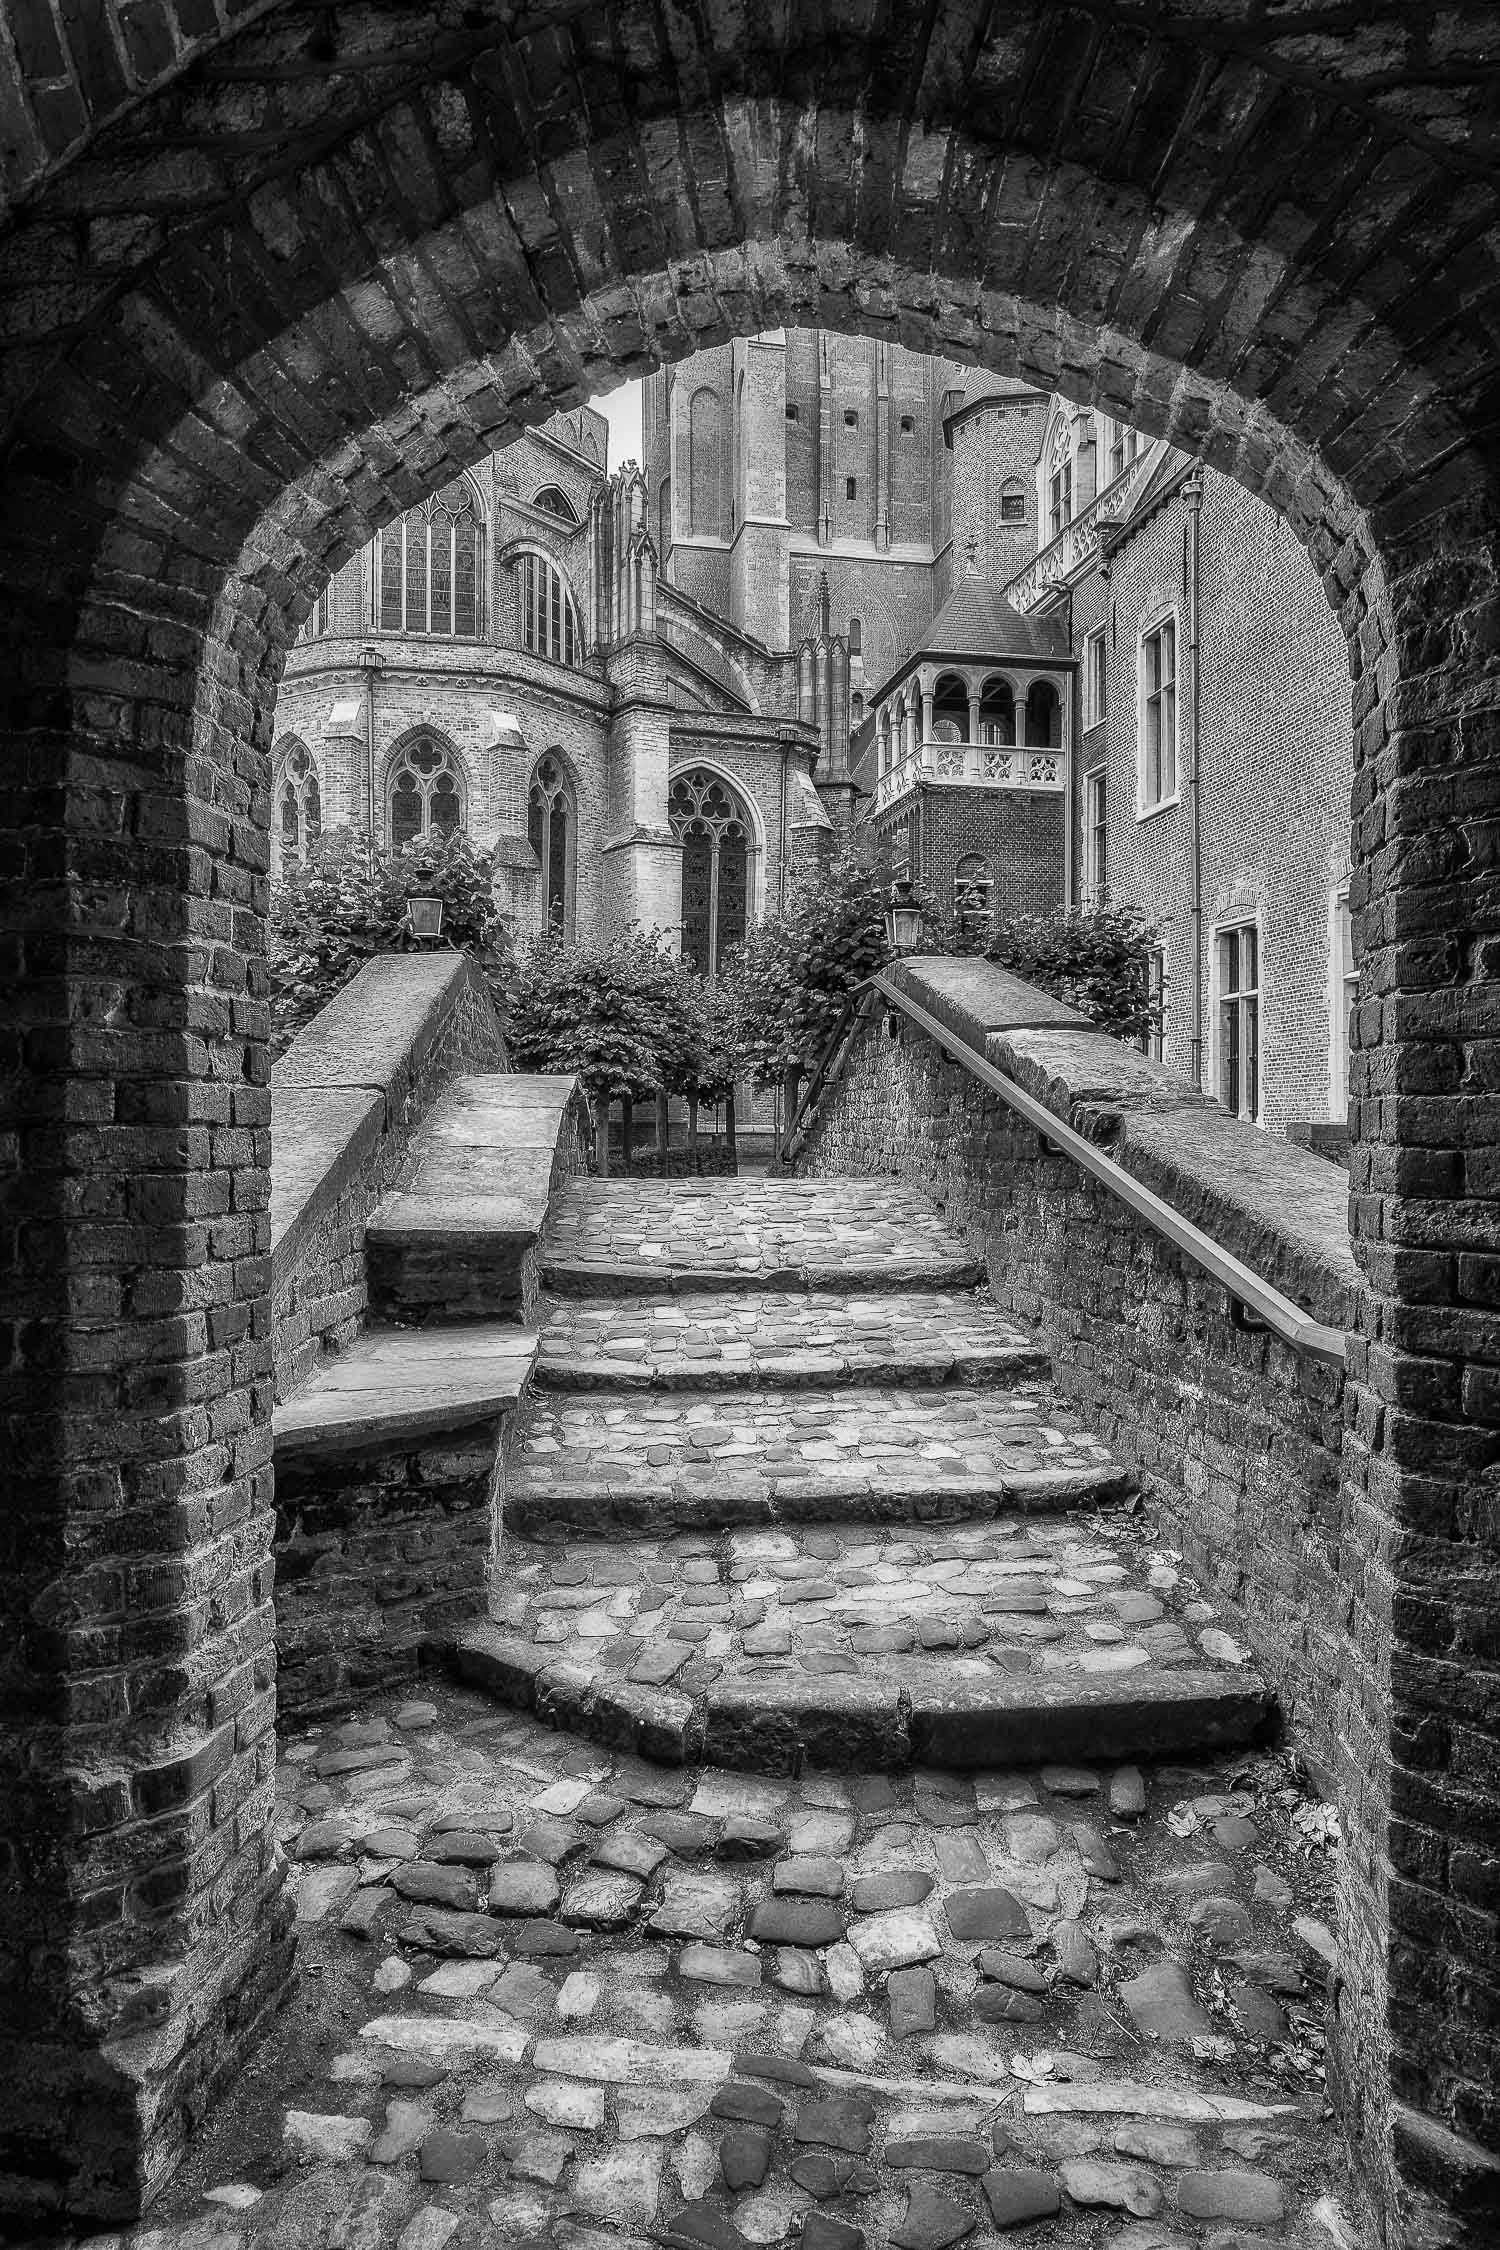 A classic view looking through an archway onto a bridge and onwards towards historic buildings in    Bruges, Belgium   .